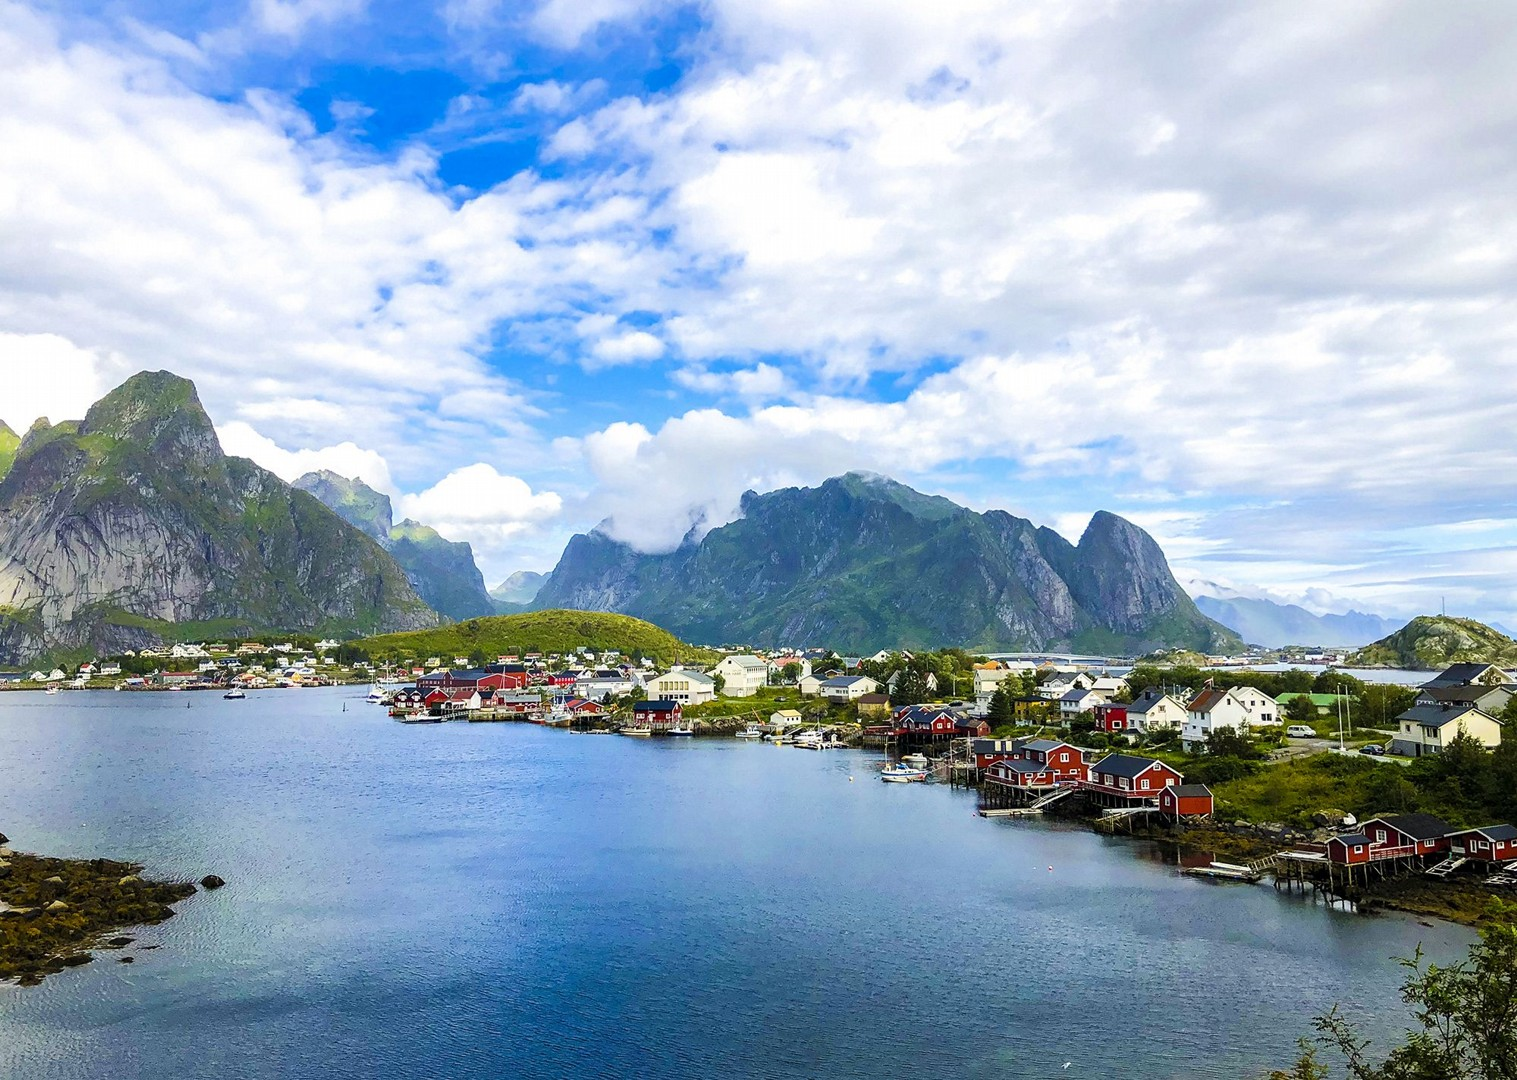 visit-local-town-culture-people-cycling-tour-norway-leisure.jpg - Norway - Lofoten Islands - Self-Guided Leisure Cycling Holiday - Leisure Cycling